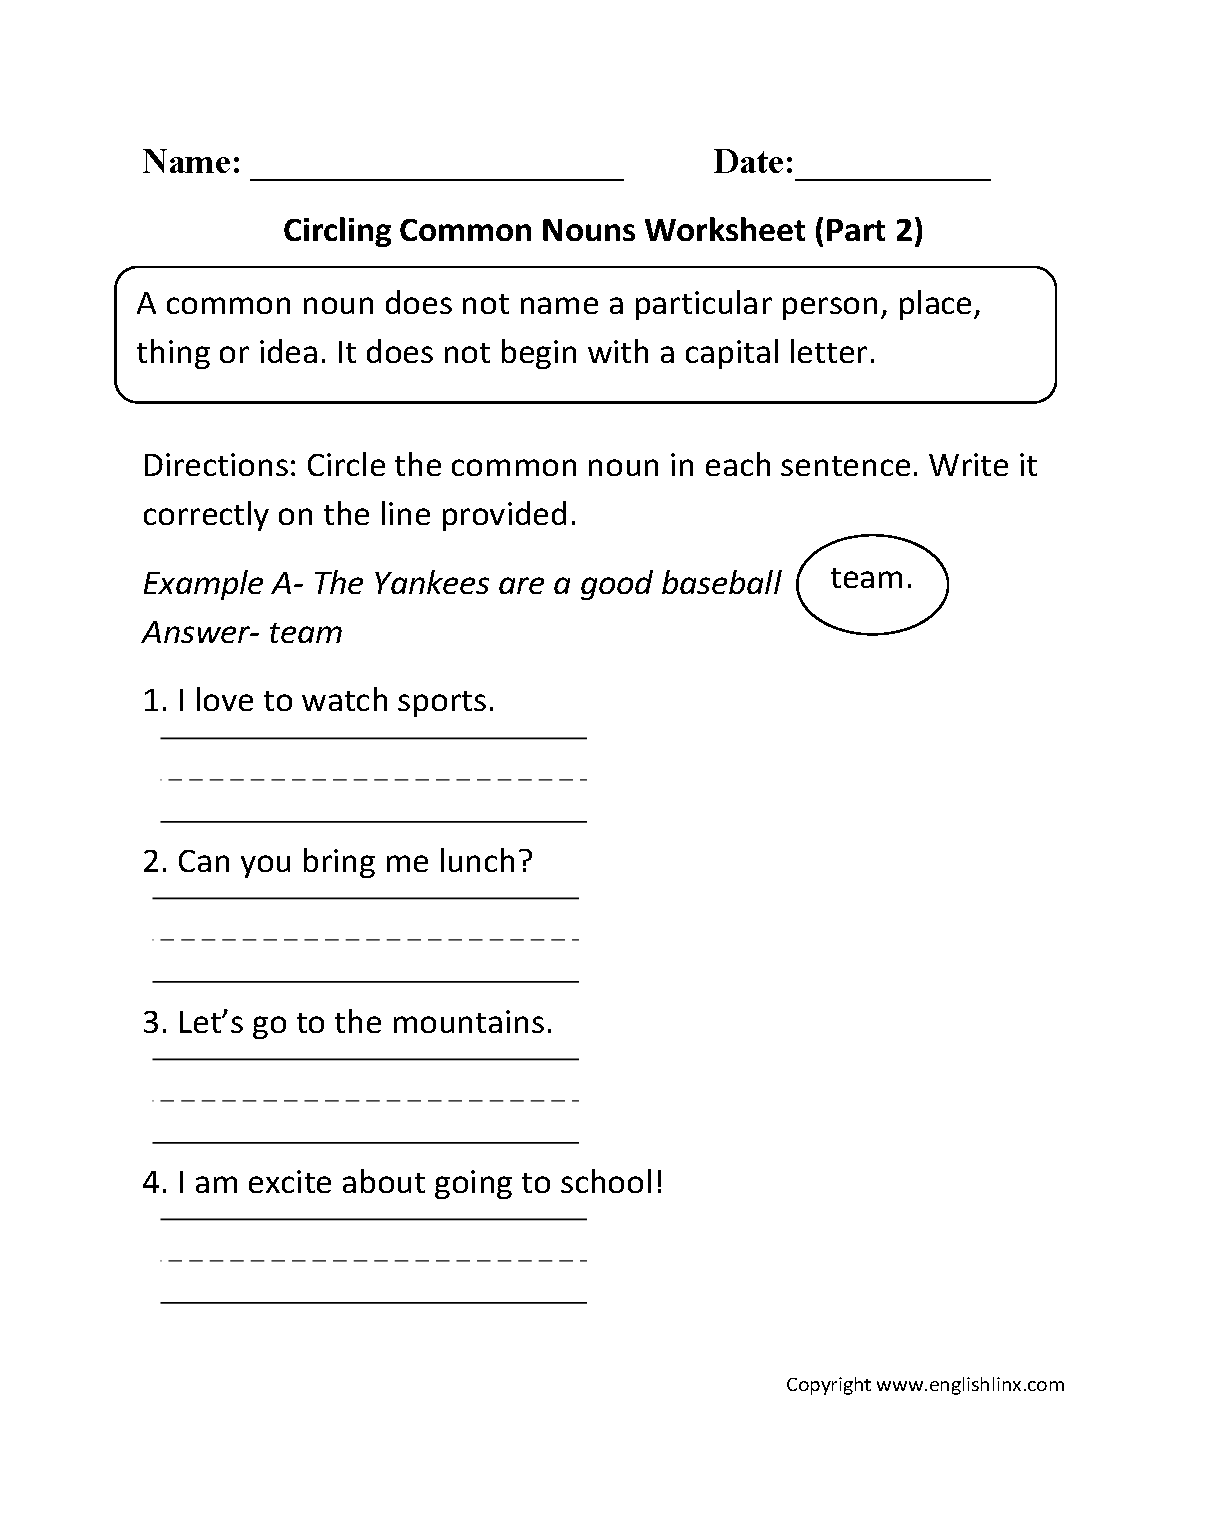 Cognitive Rehabilitation Worksheets